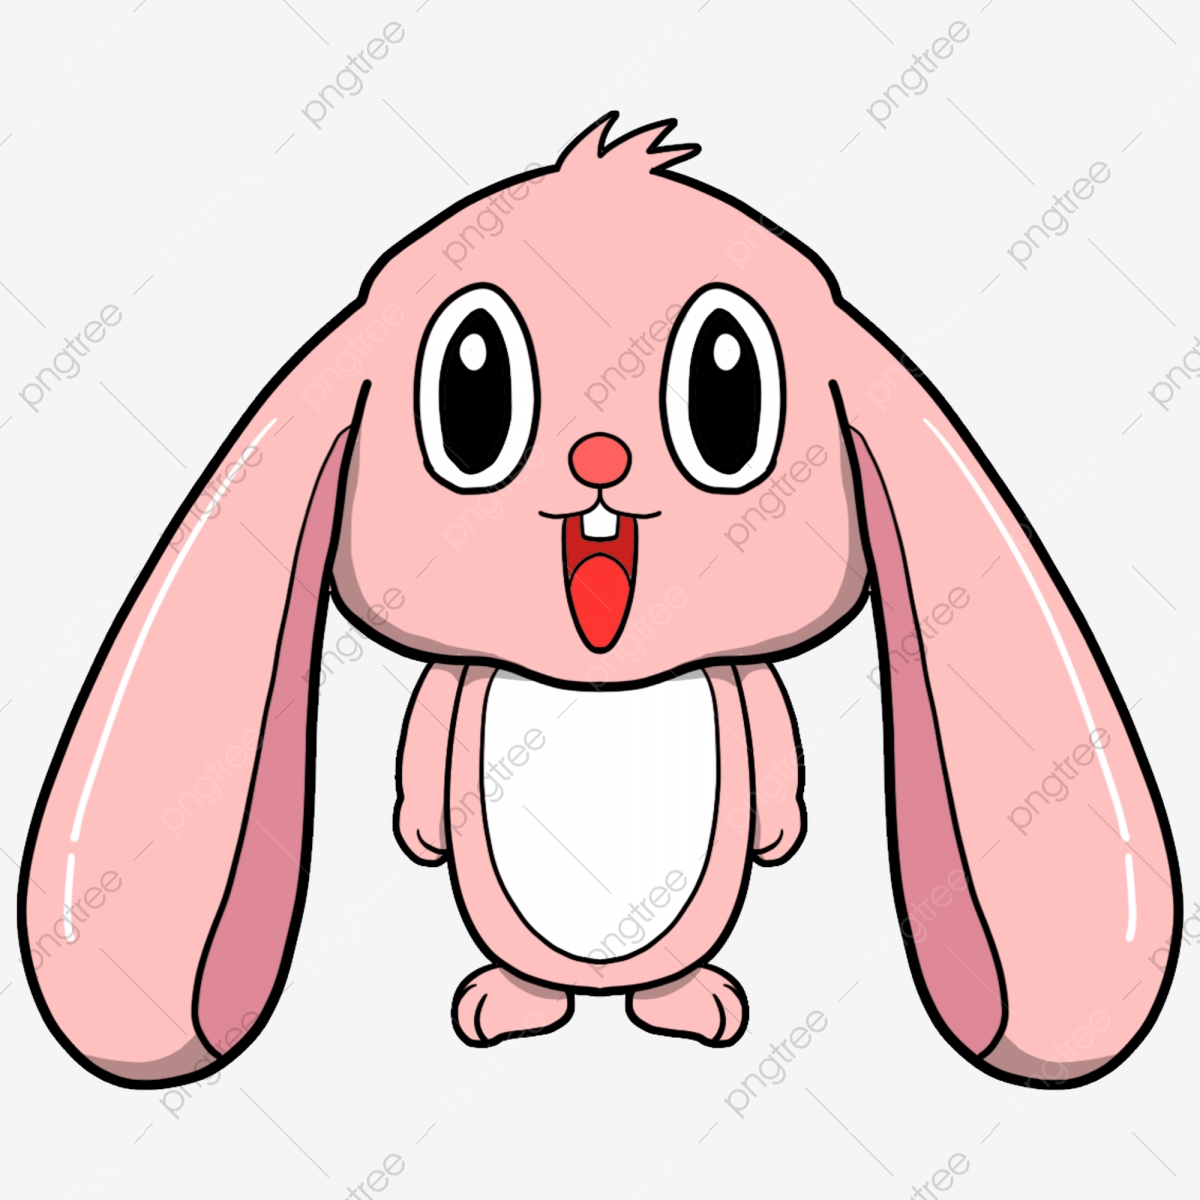 pngtree bunny wallpaper vector png image 3278017